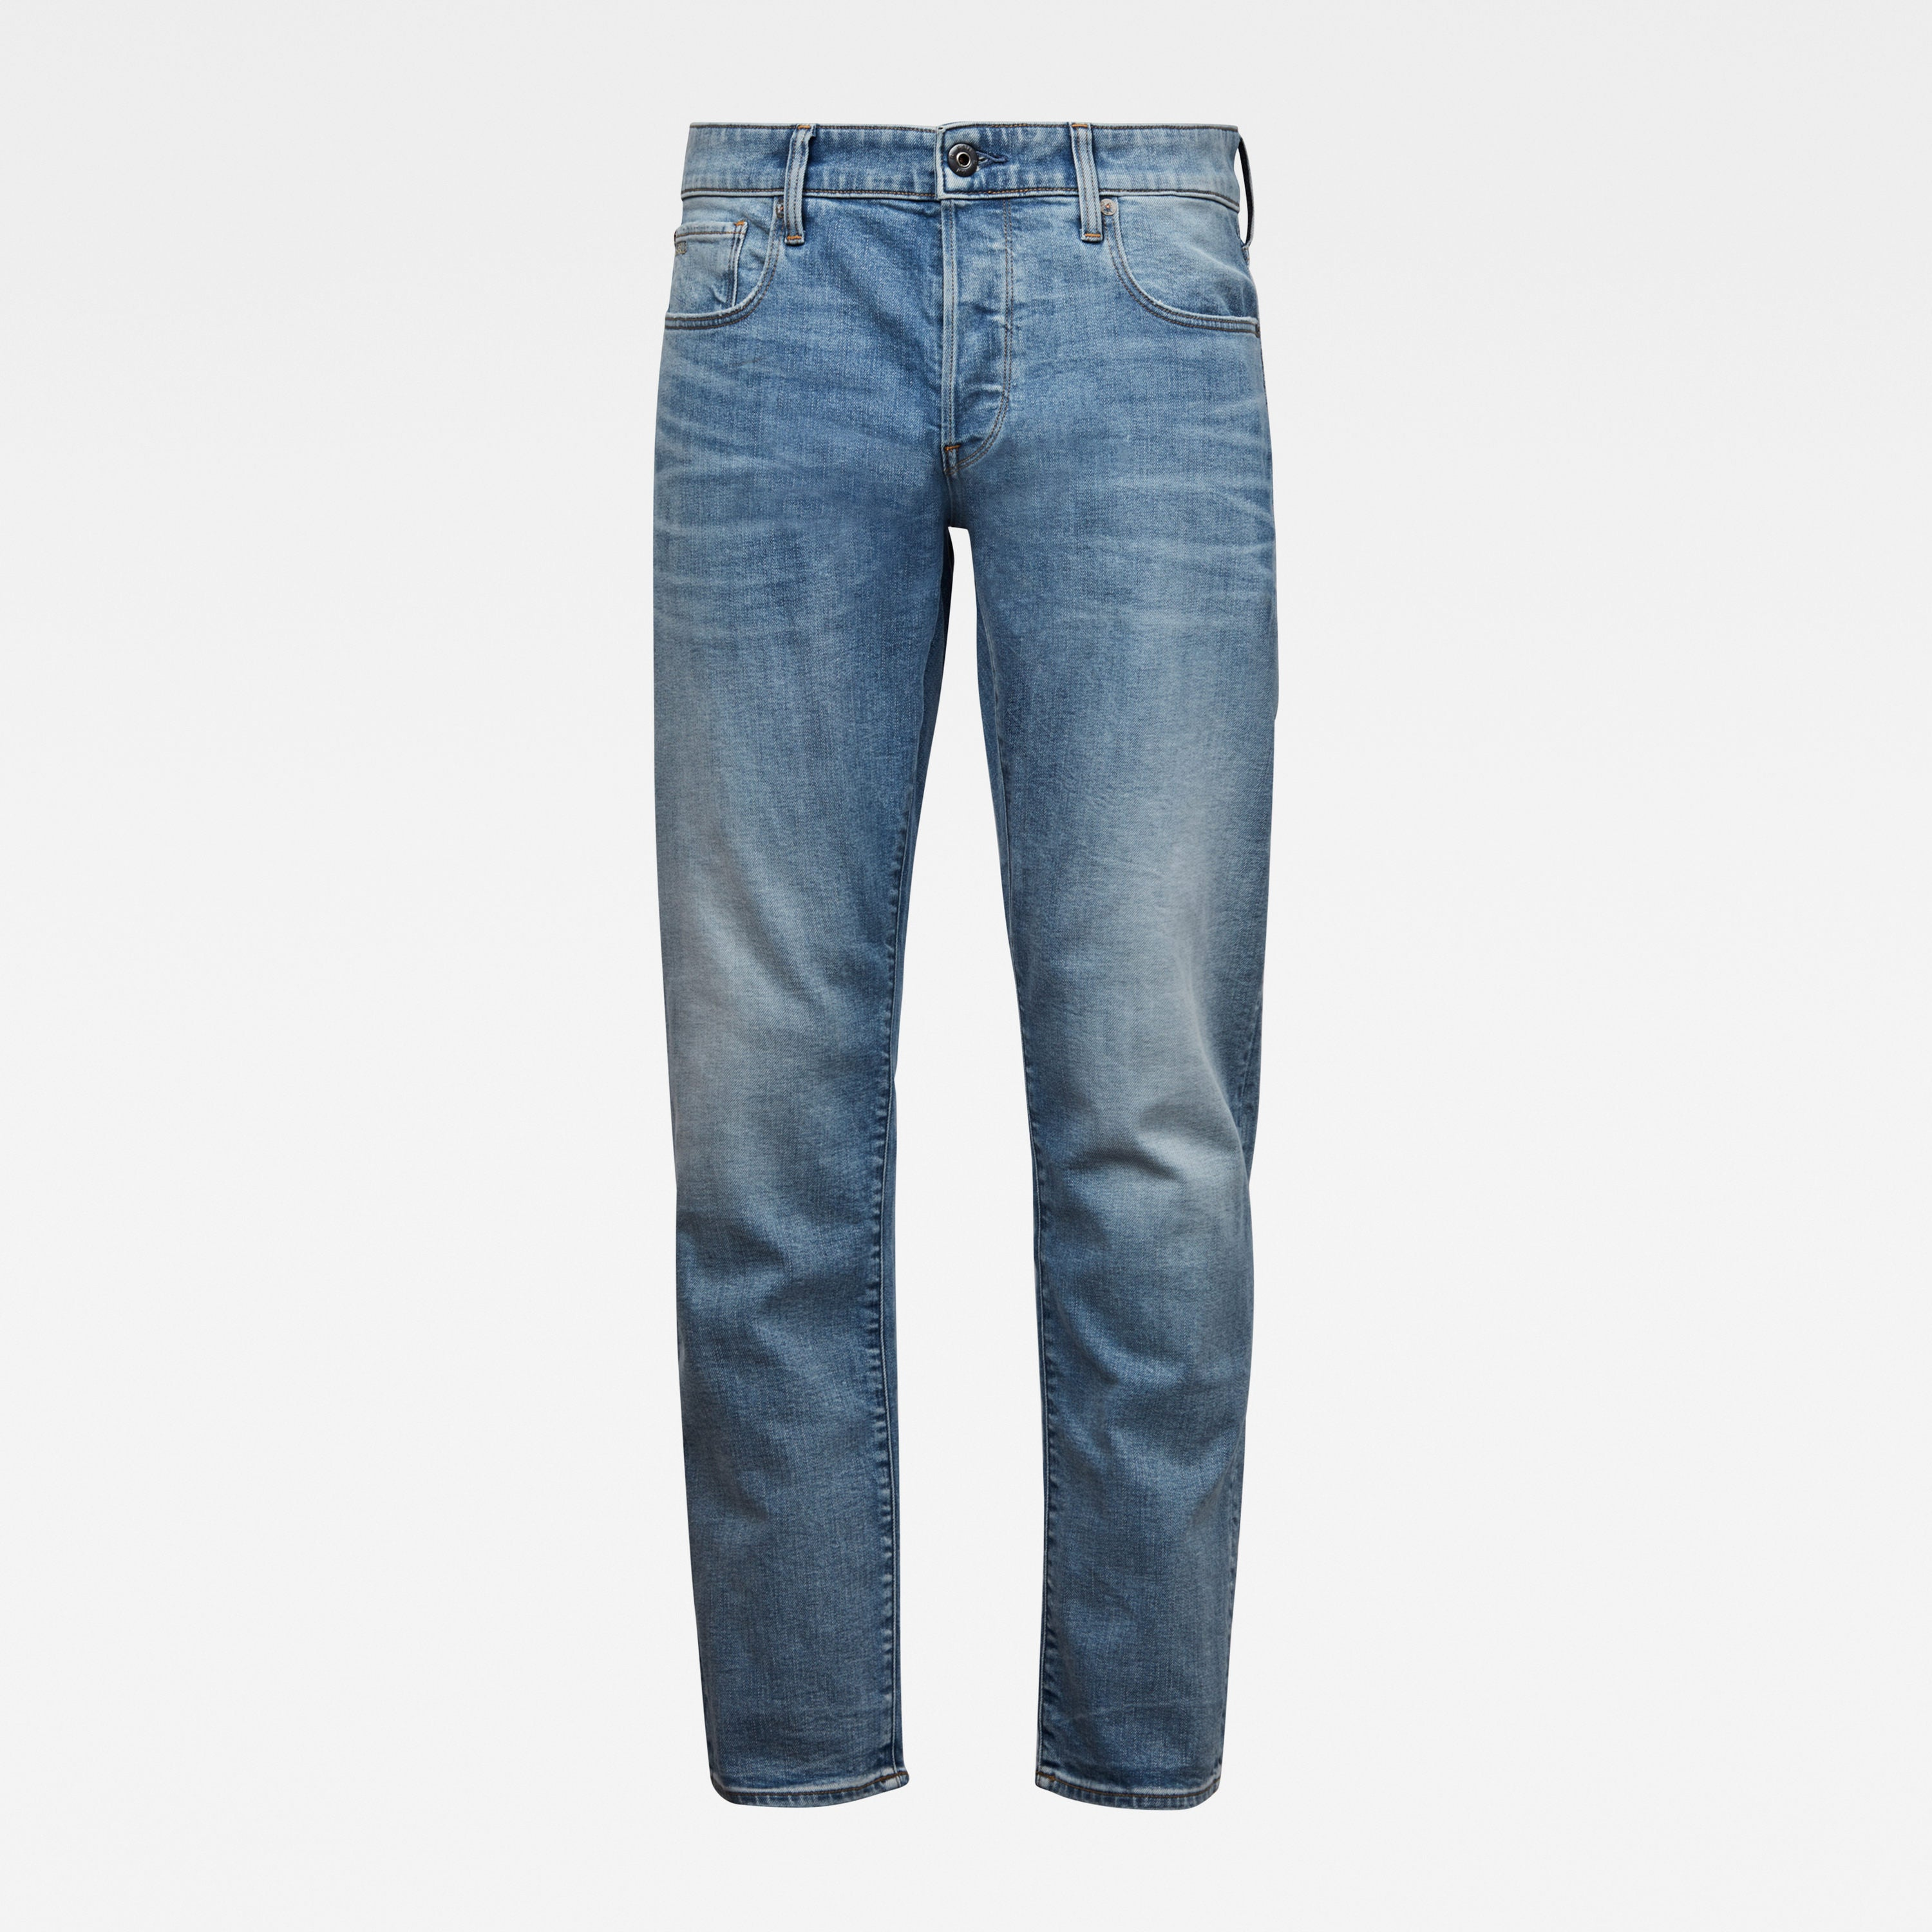 3301 Straight Tapered Jeans - light indigo